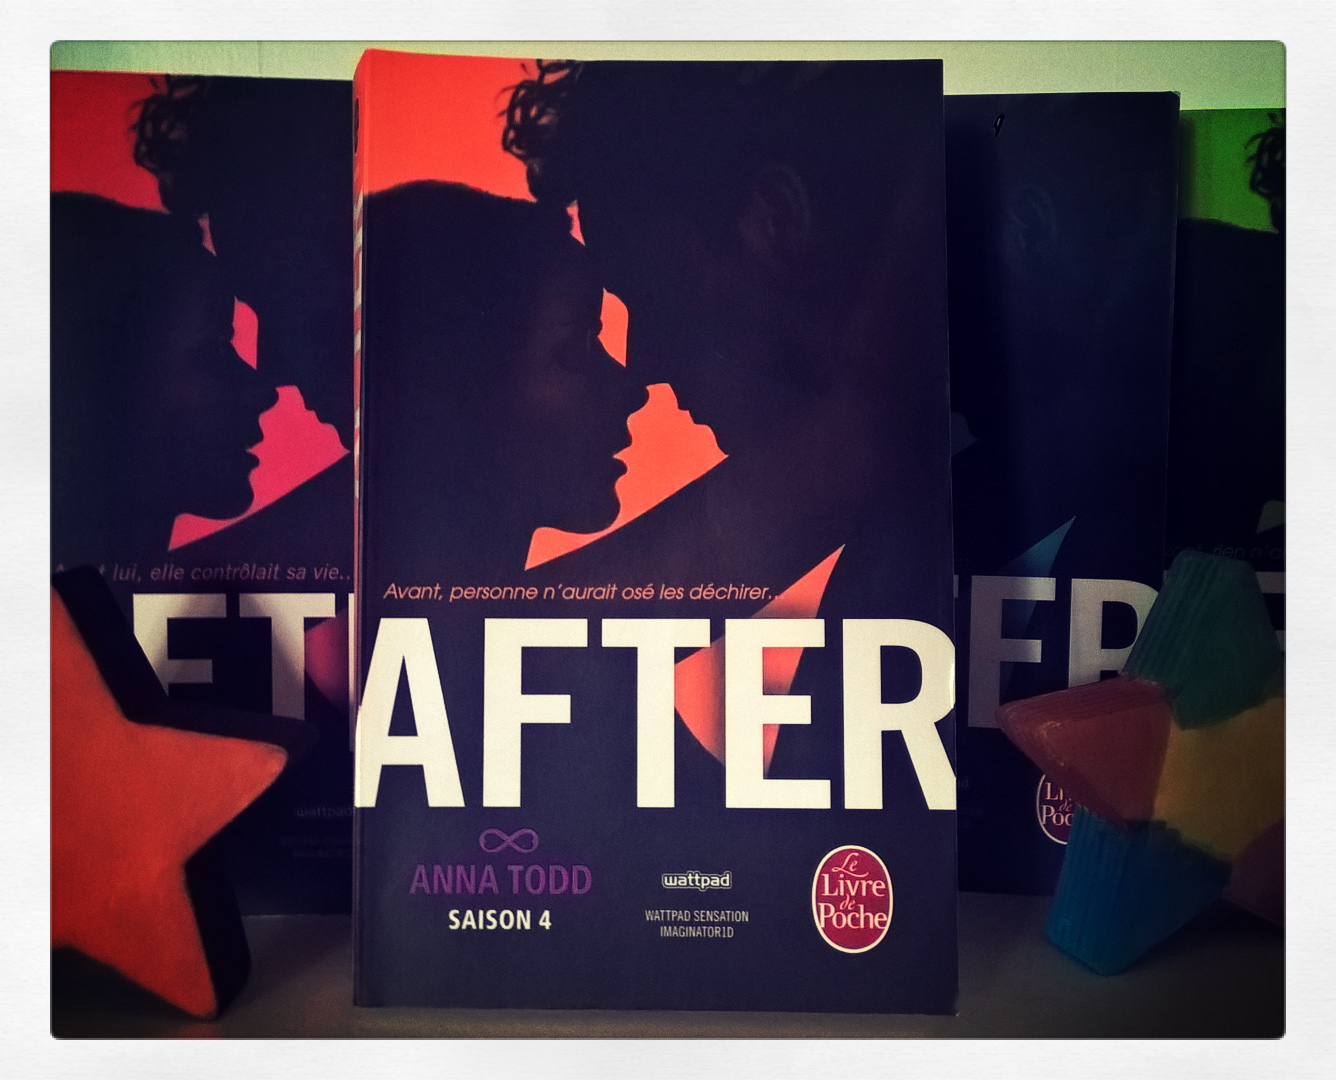 After Tome 4 Anna Todd Fofie Lit